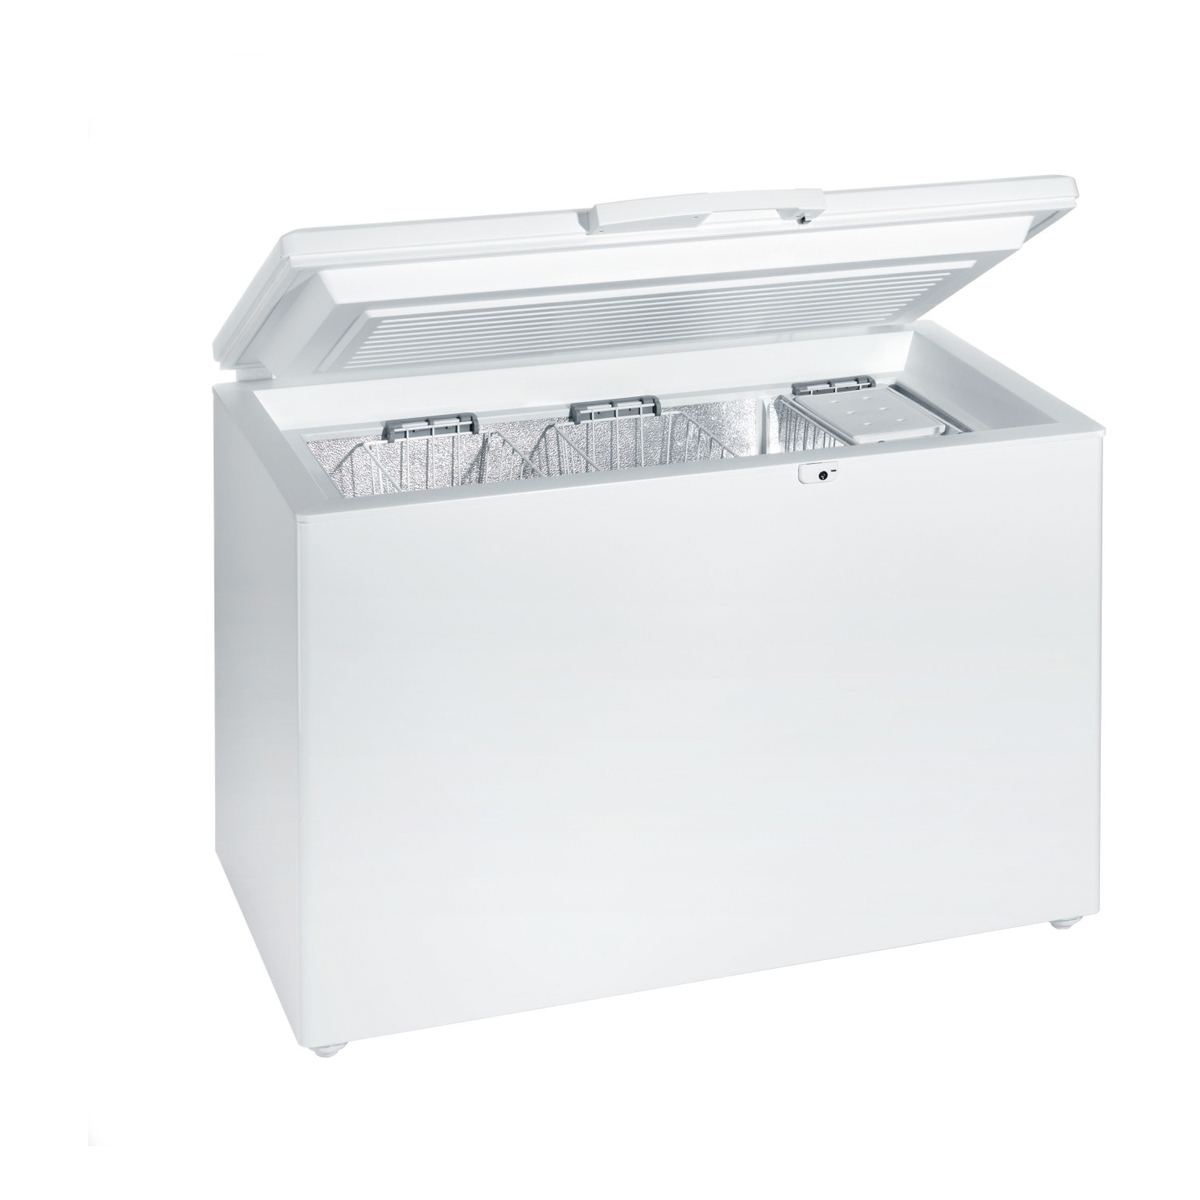 Hotpoint Slow Juicer John Lewis : Miele GT5284S A++ Energy Rated Chest Freezer with 284L/10cuft Net Capacity in White Hughes